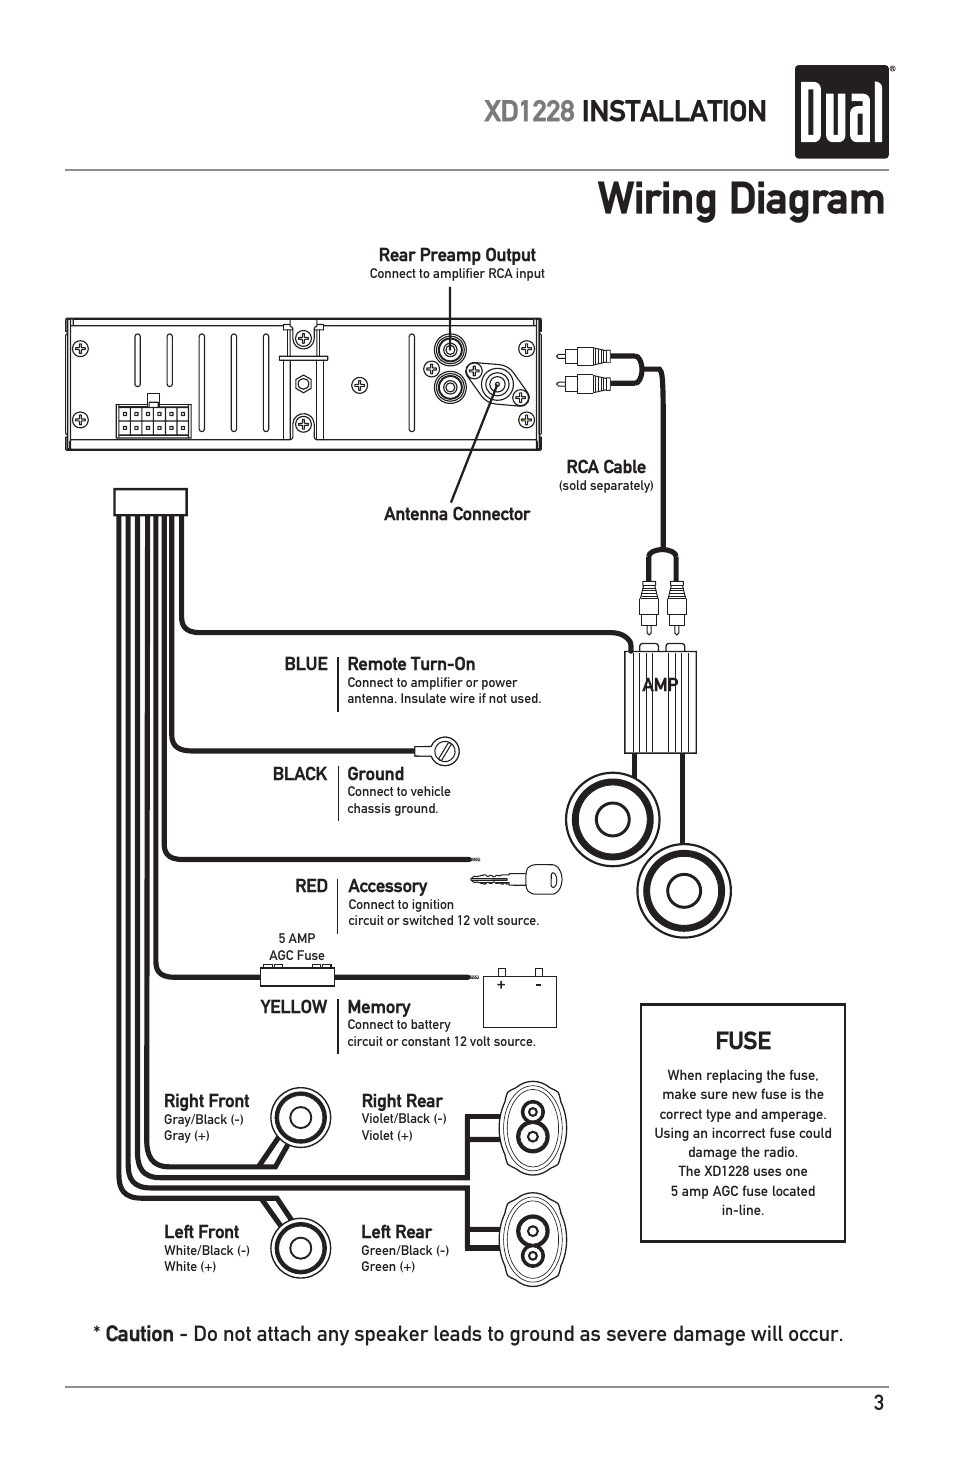 dual xd1228 page3 dual rca stereo wiring diagram wiring diagrams dual model xdvd710 wiring diagram at n-0.co